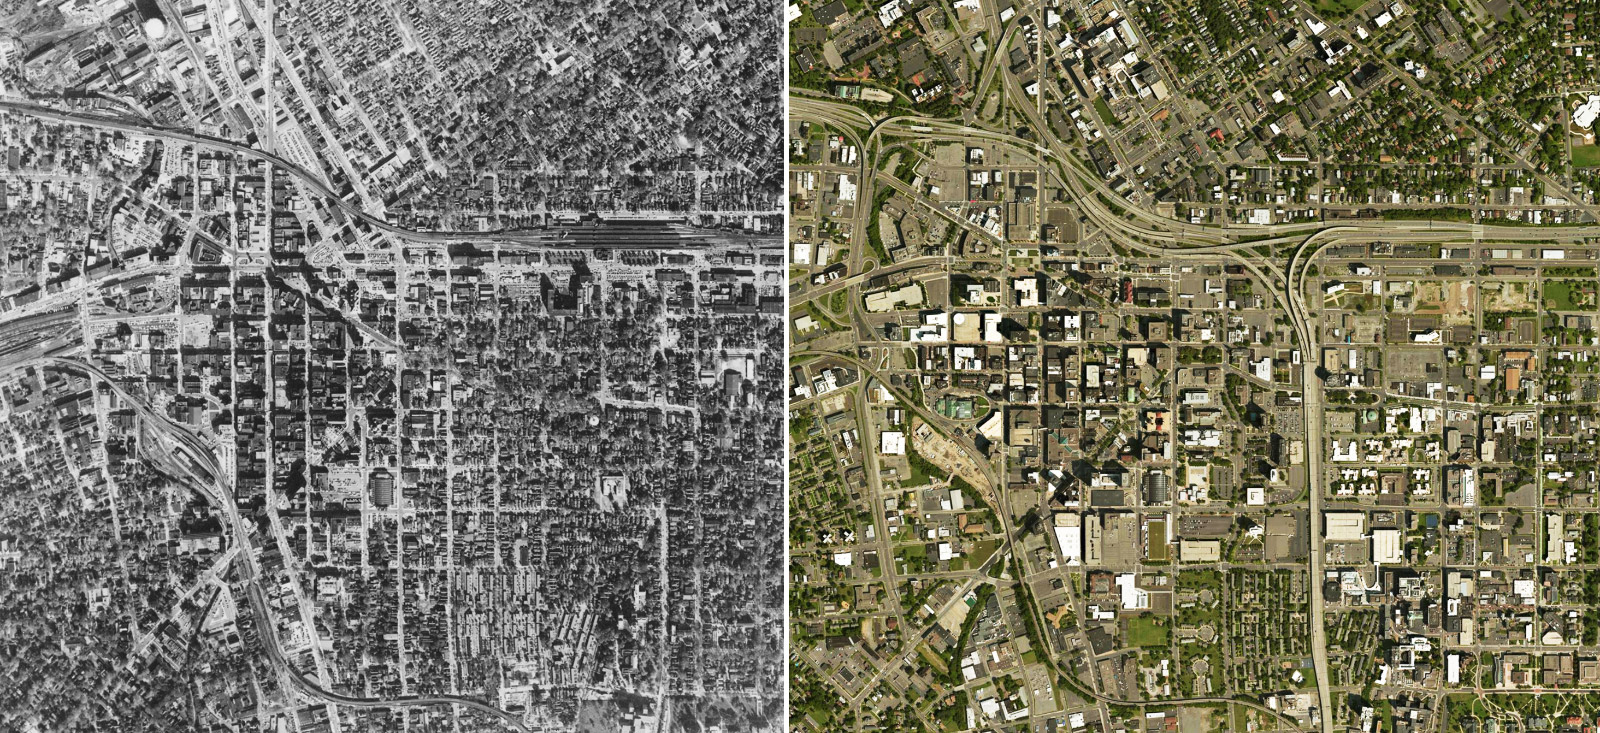 The I-81 viaduct cuts through Syracuse's urban core. Left: The city's density in 1955 before the highway's construction. Right: The city's density today.